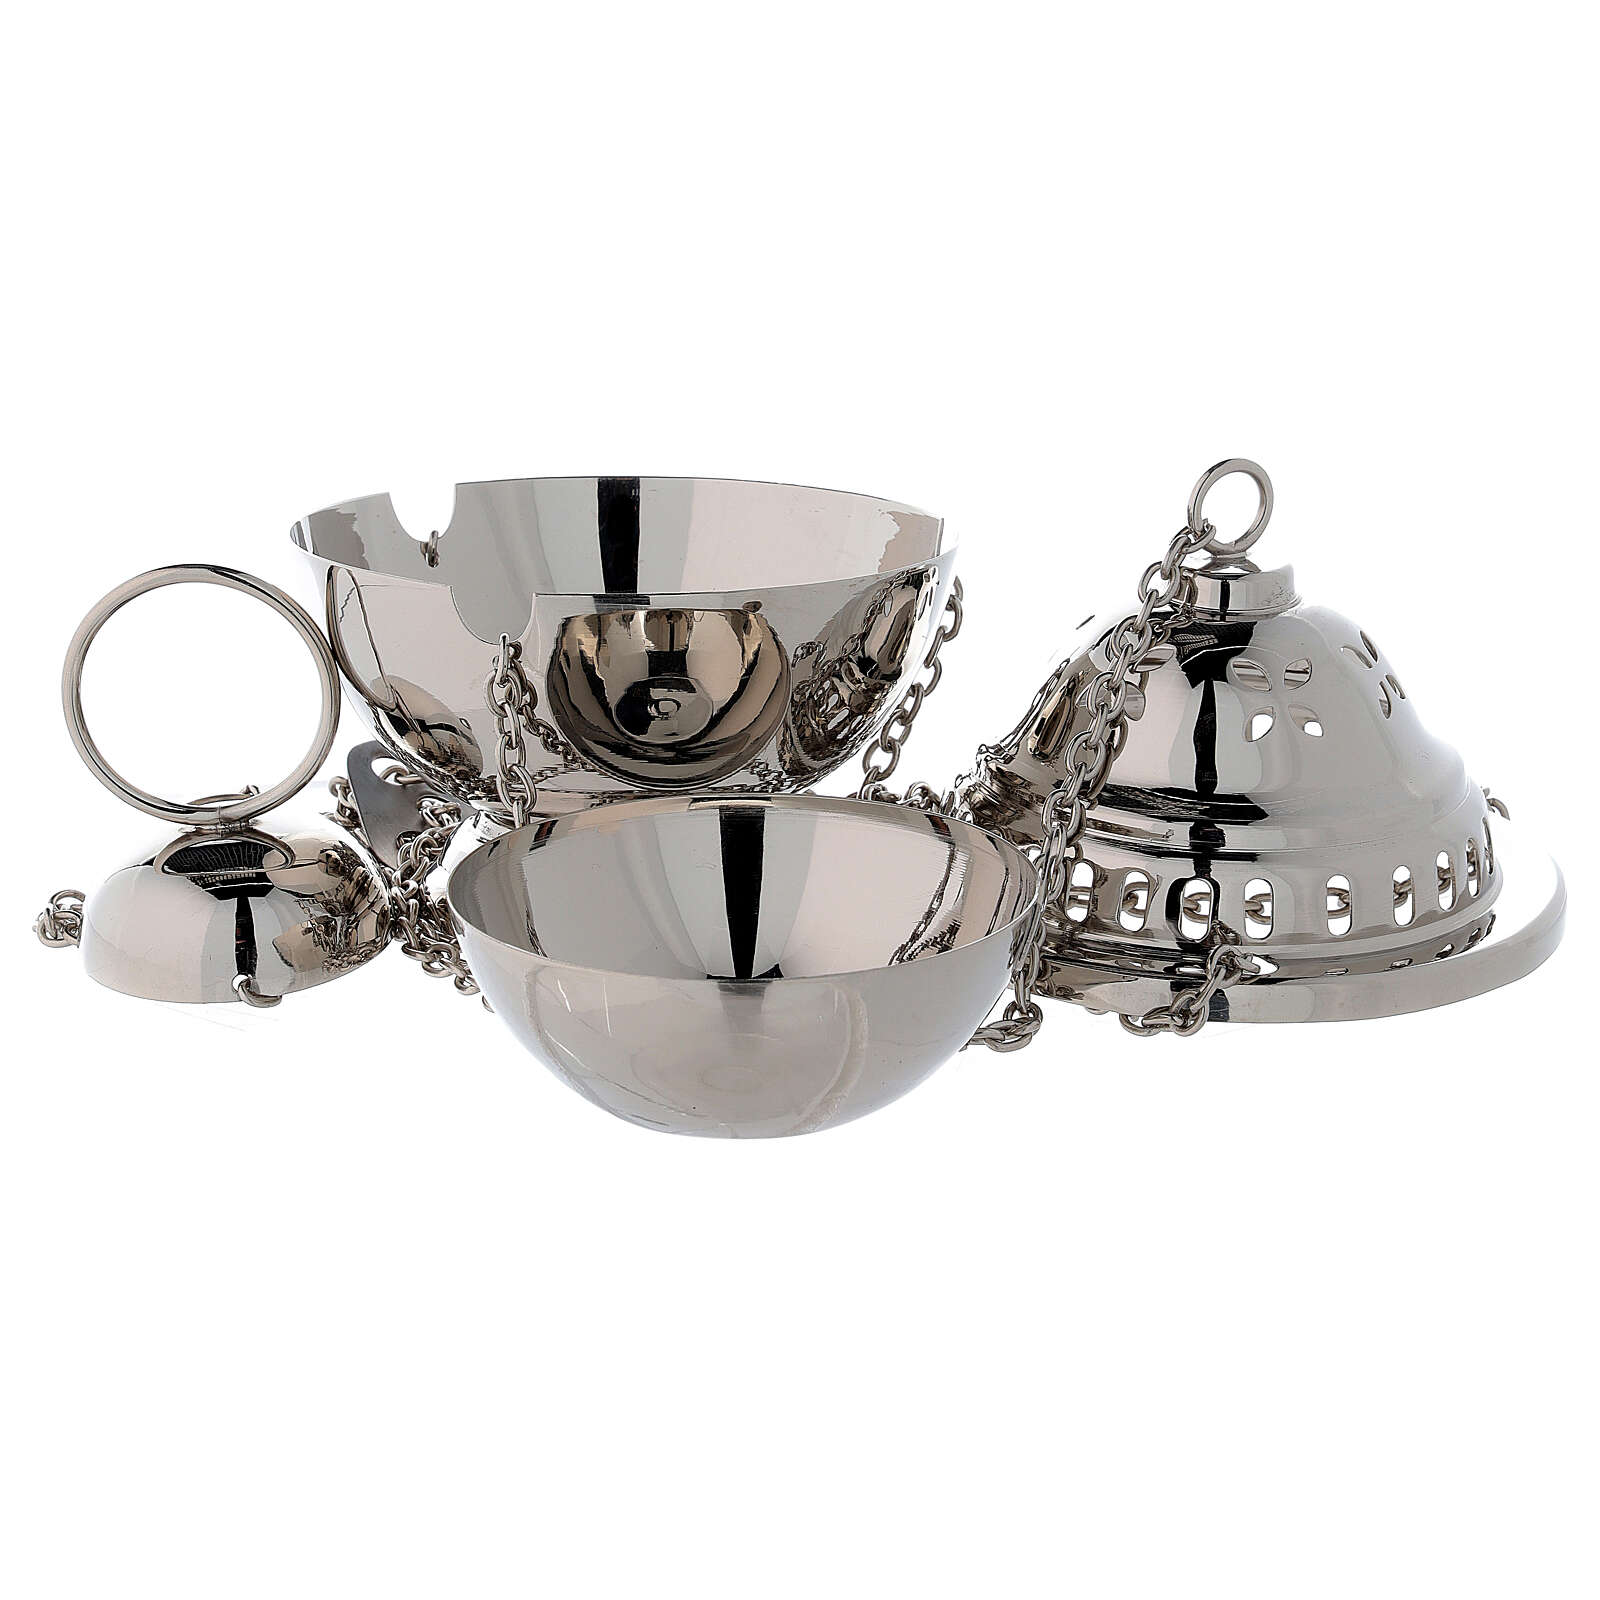 Spherical censer with petal holes in nickel-plated brass h 14 cm 3